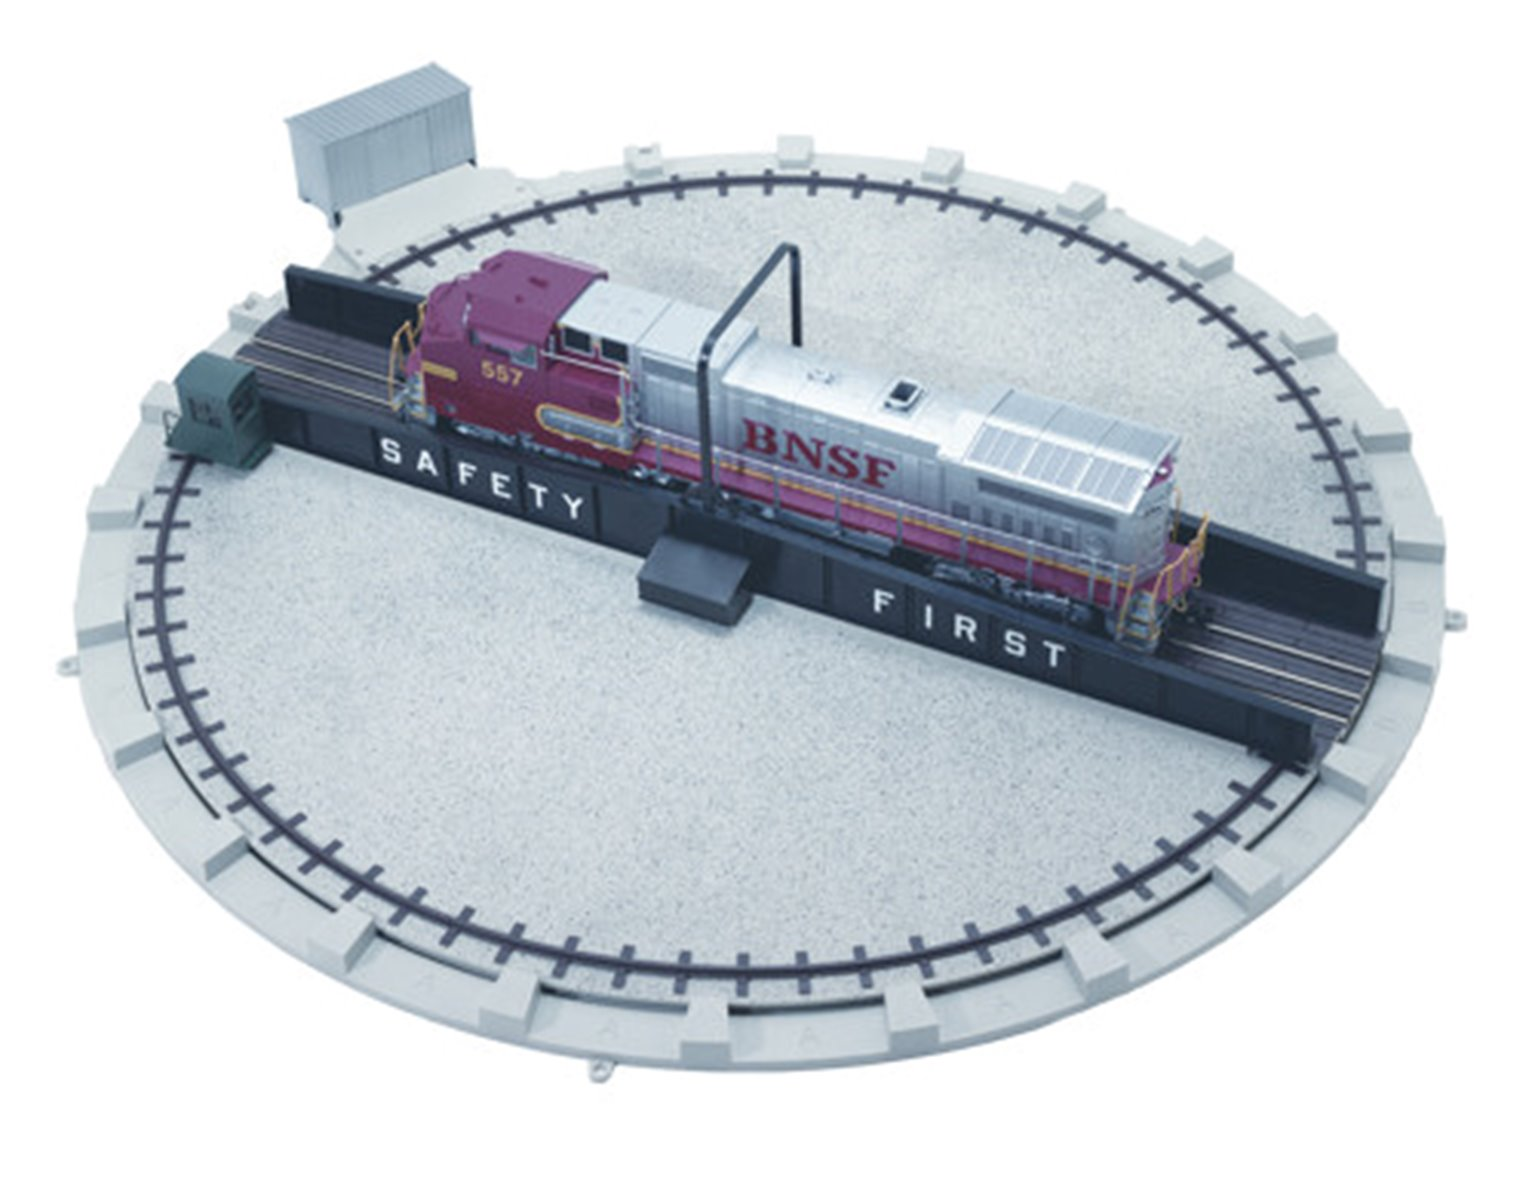 Atlas 6910 O Gauge Turntable (For 3-Rail And 2-Rail Operation)